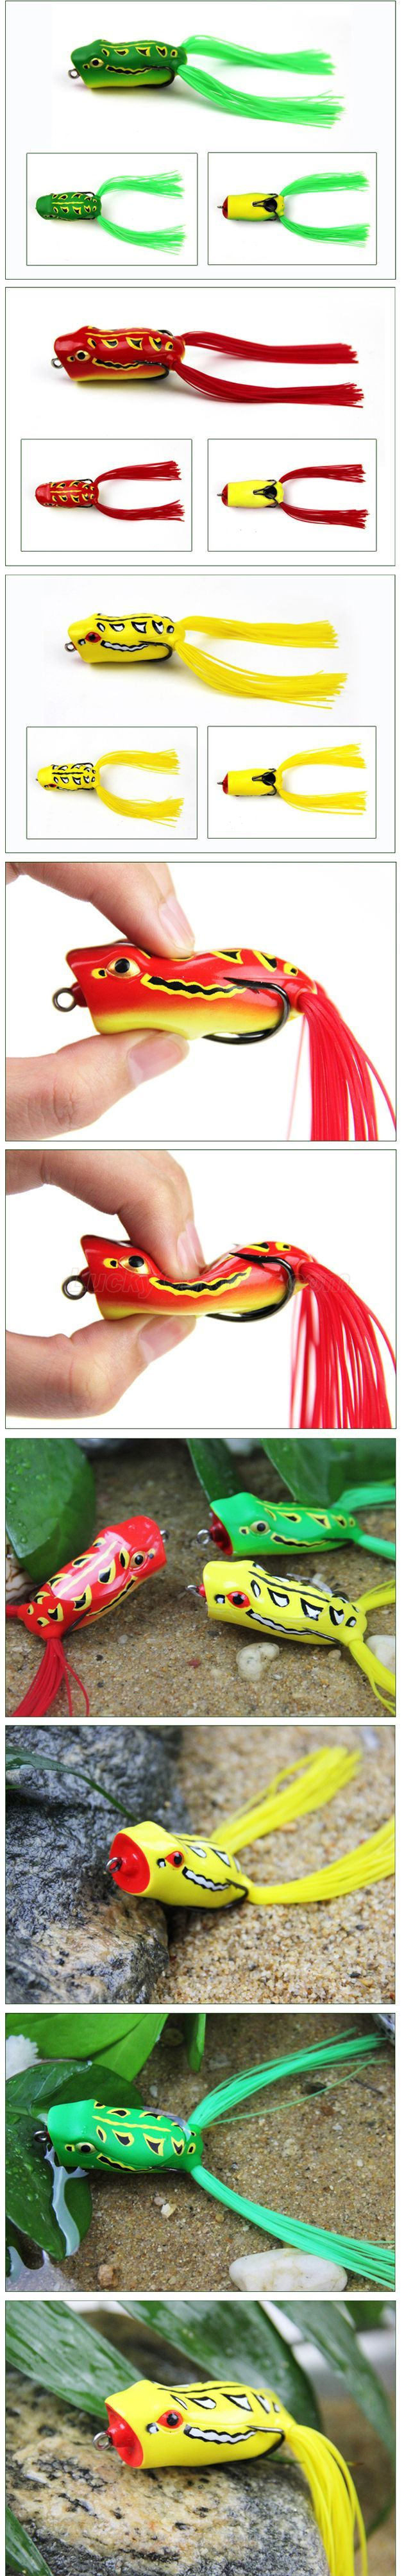 frog-fishing-lure http://giftmetoday.com/index.php?c=5278&n=3410851&k=90009&t=Sub&s=sr&p=1